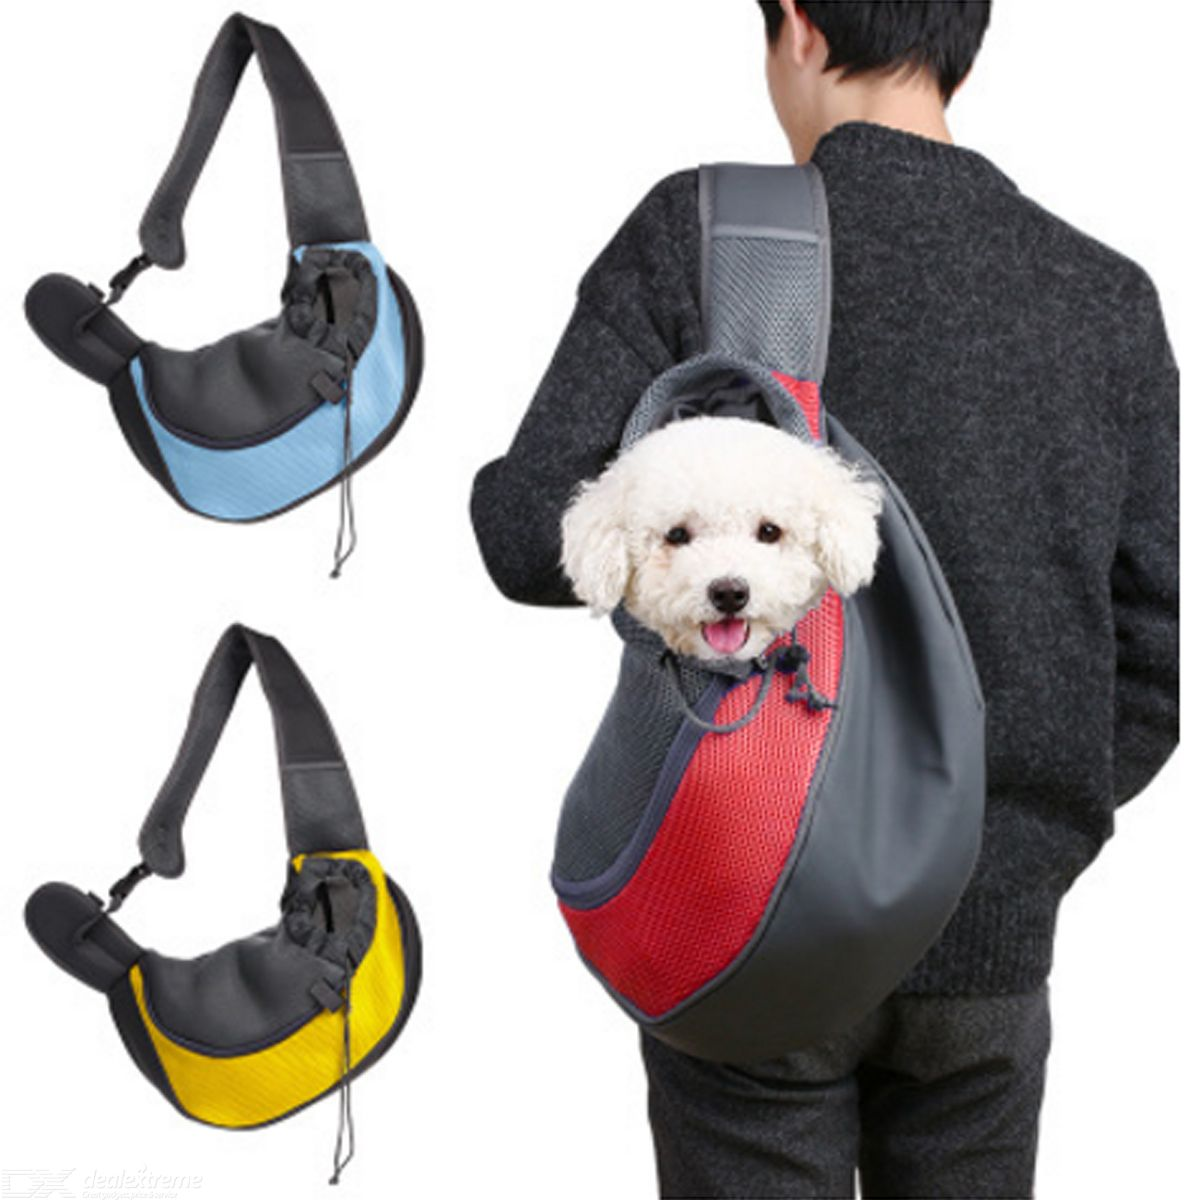 Small-Animal-Puppy-Dog-Cat-Pet-Carrier-Sling-Front-Mesh-Travel-Tote-Shoulder-Bag-Backpack-w-Pet-Silicone-Bowl